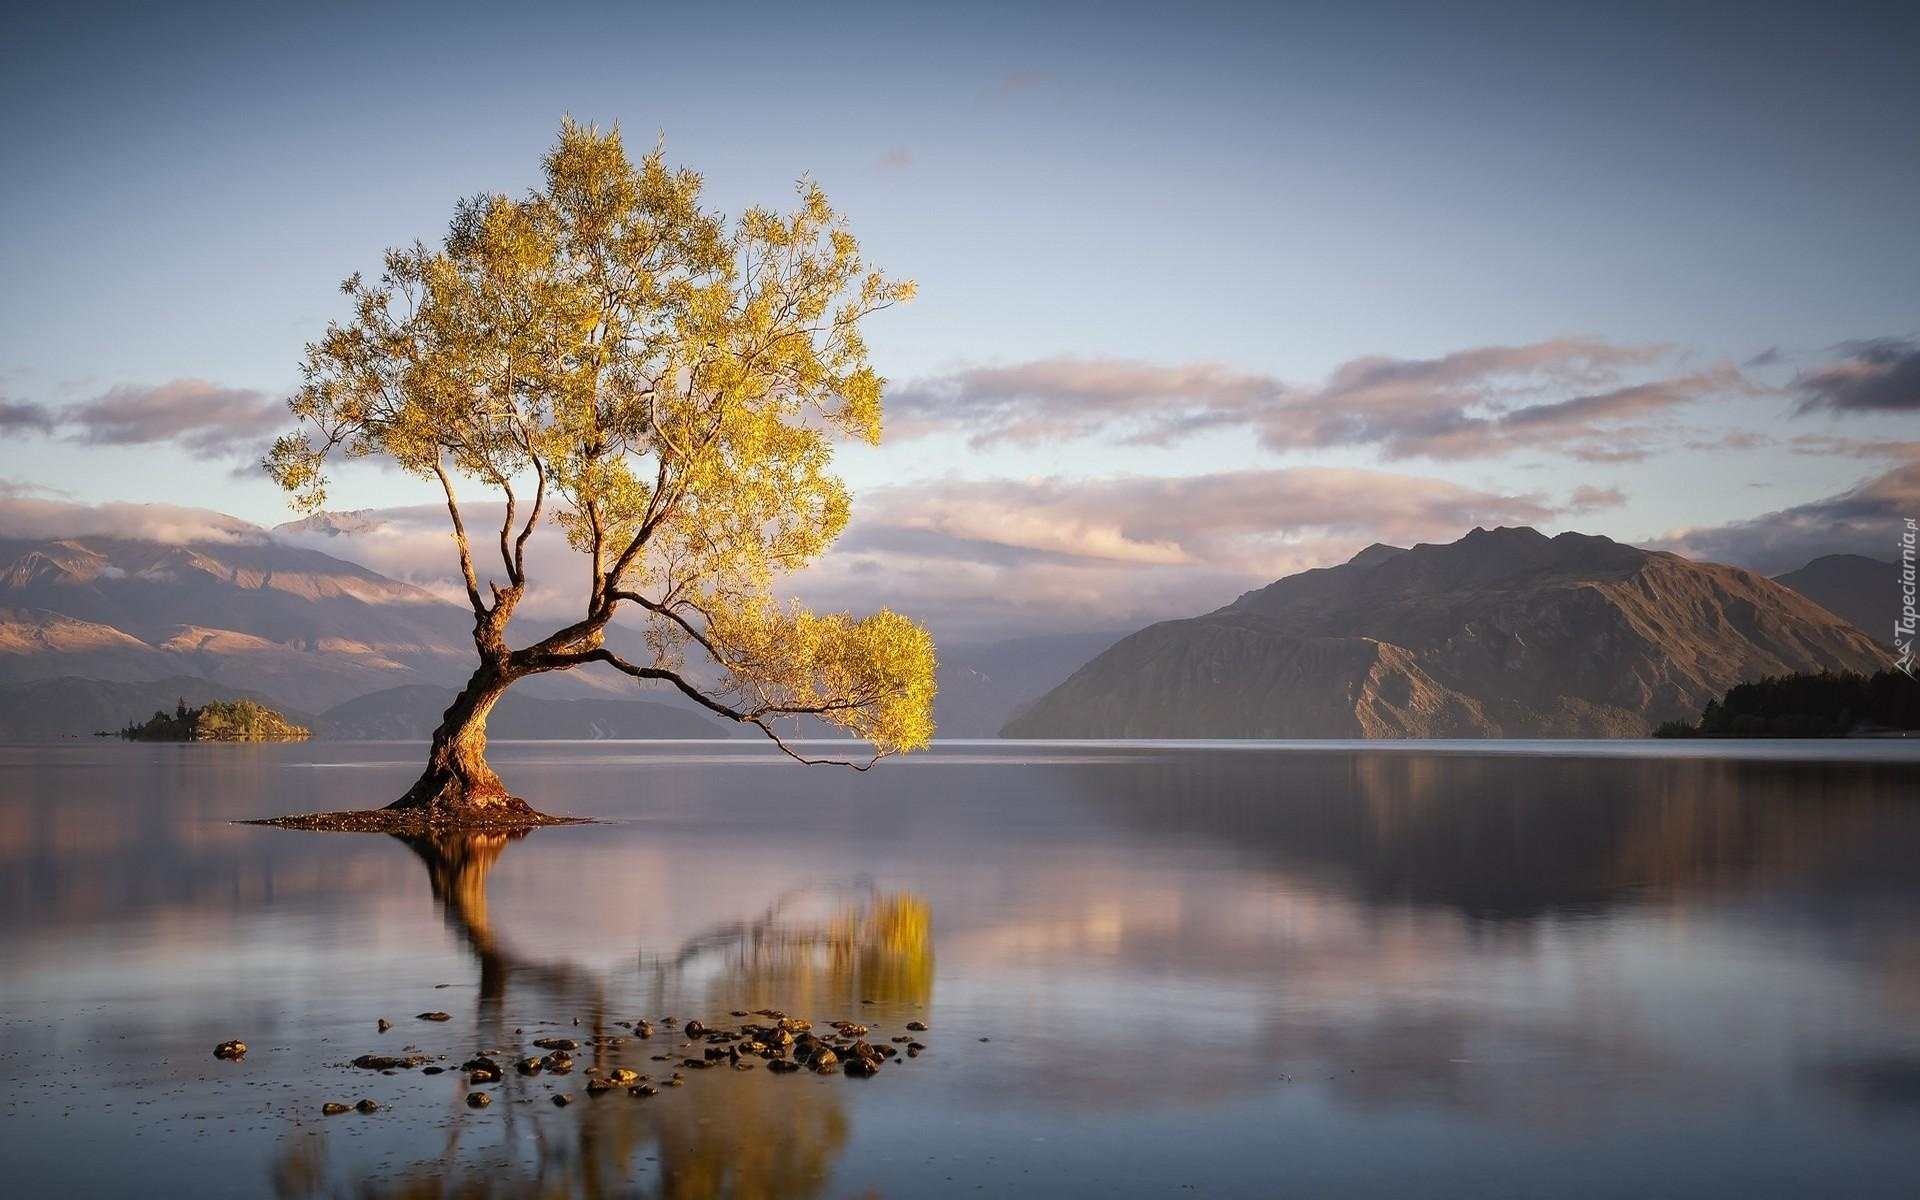 Fall Hd Wallpapers For Mac Nowa Zelandia Jezioro Wanaka G 243 Ry Drzewo Odbicie